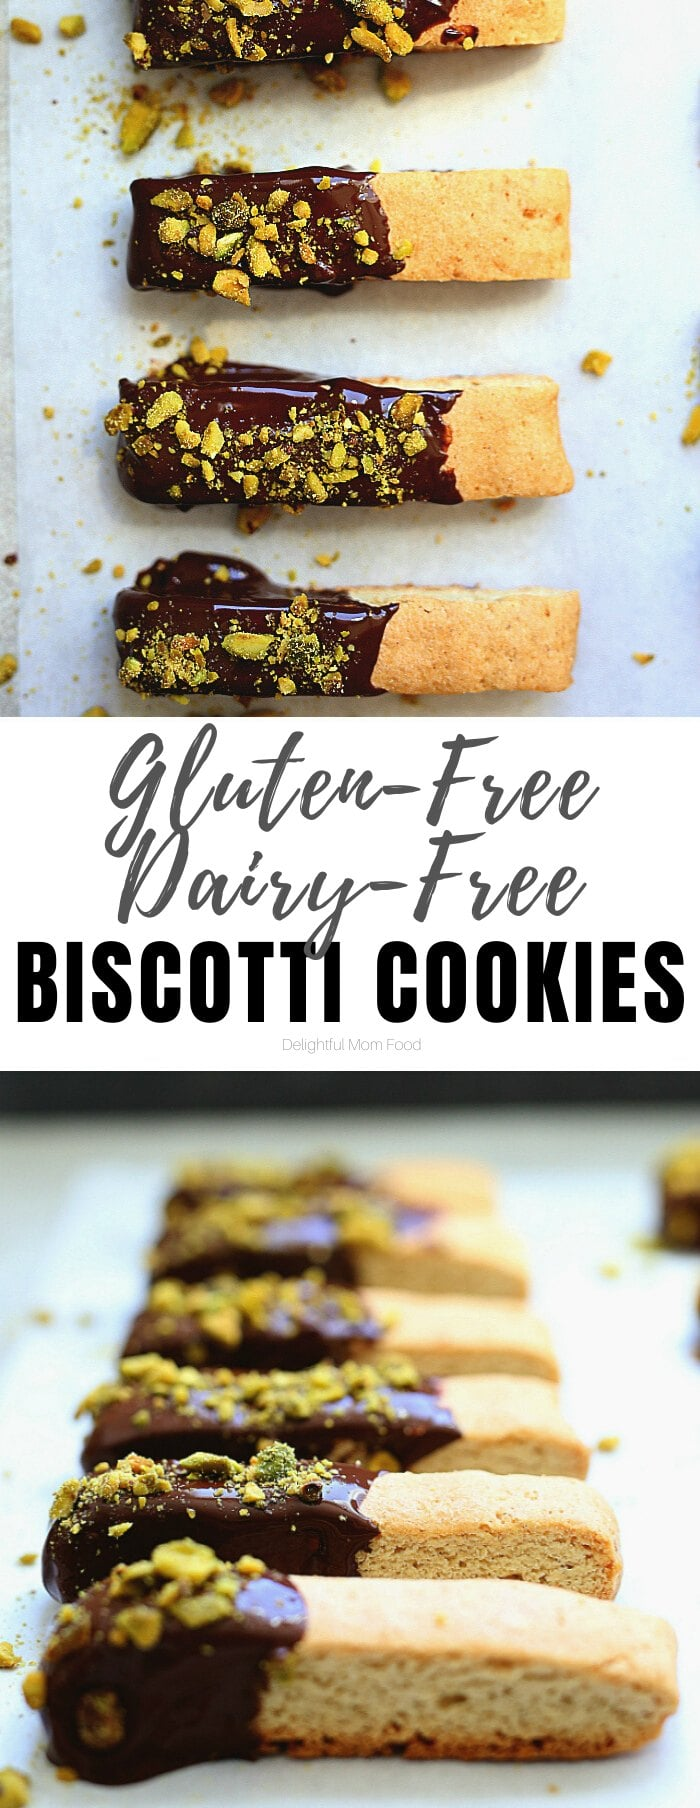 Wholesome gluten-free biscotti cookie recipe topped with dairy-free chocolate and crunchy pistachios to sooth a cookie craving! Fabulous to enjoy for your next tea party or holiday cookie exchange.  #glutenfree #cookie #cookies #recipe #dairyfree #biscotti #dessert #treats #sweets #wholesome | Delightful Mom Food